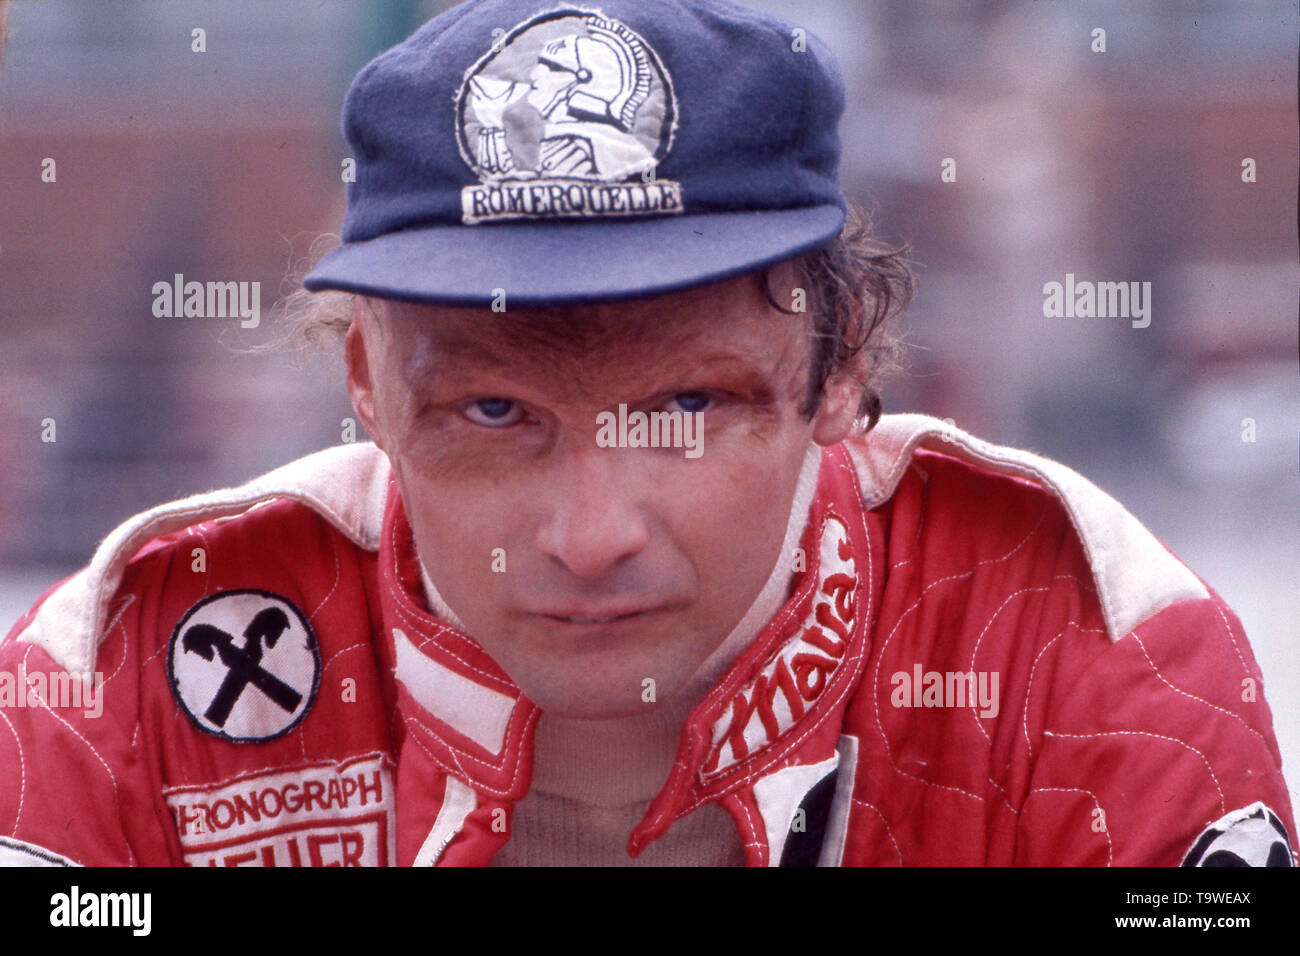 Hockenheim, Deutschland. 21st May, 2019. Niki Lauda died at the age of 70 Niki LAUDA (AUT), Formula One, racing driver, Scuderia Ferrari, portrait, with cap (MvO), Kaeppi (KvOUU), in racing suit, during a break, grim look, serious, bad-tempered; not exactly dated color photograph from the year 1977; vǬ | usage worldwide Credit: dpa/Alamy Live News - Stock Image